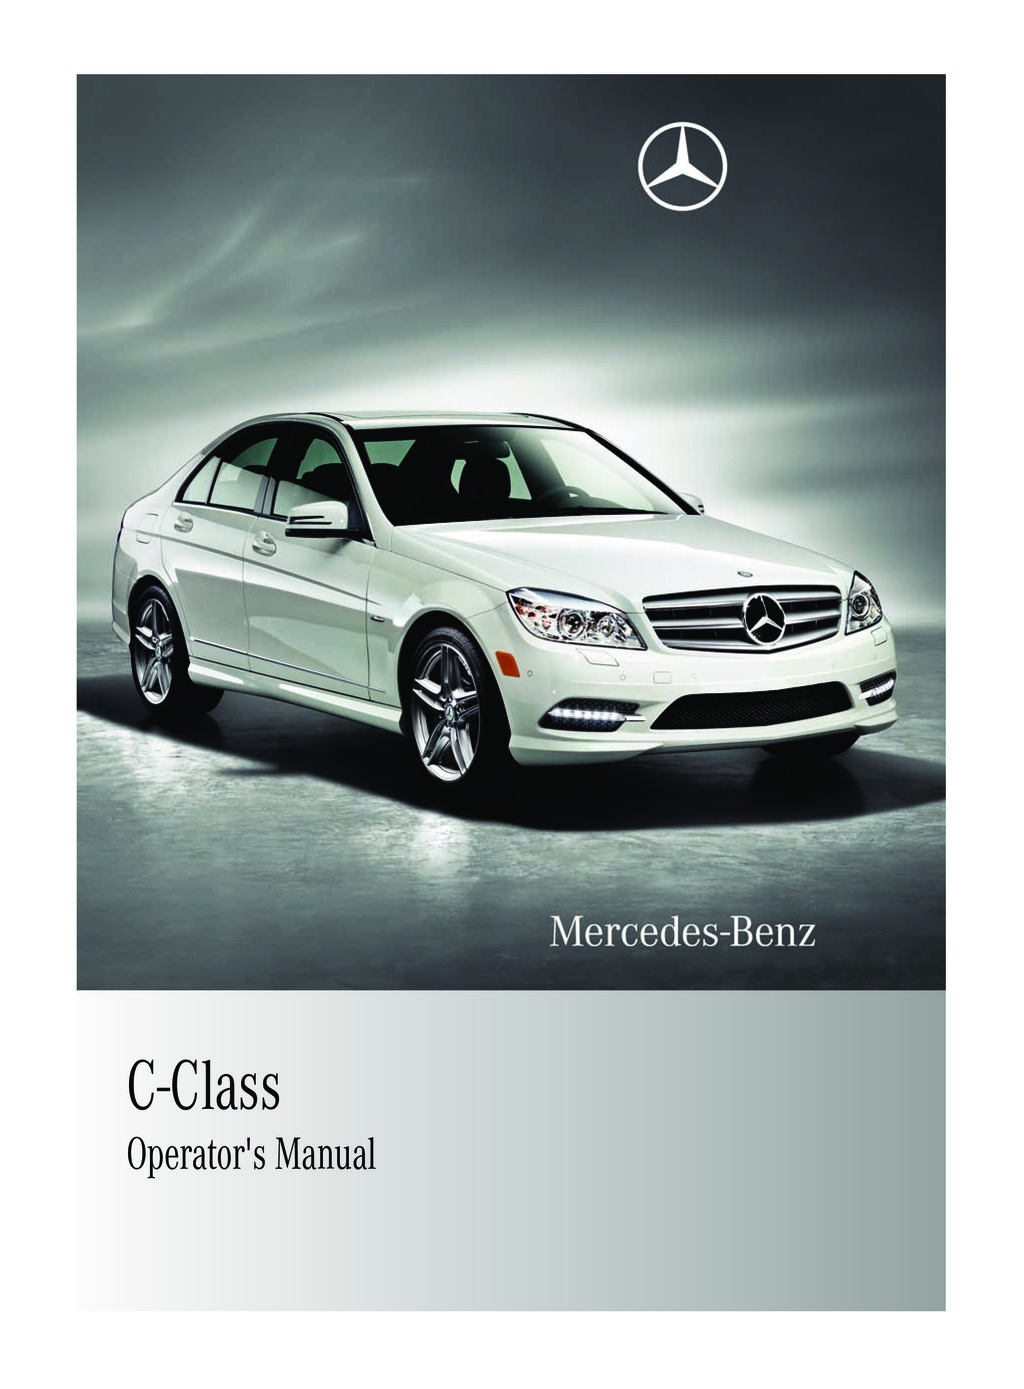 2011 Mercedes-Benz C Class owners manual